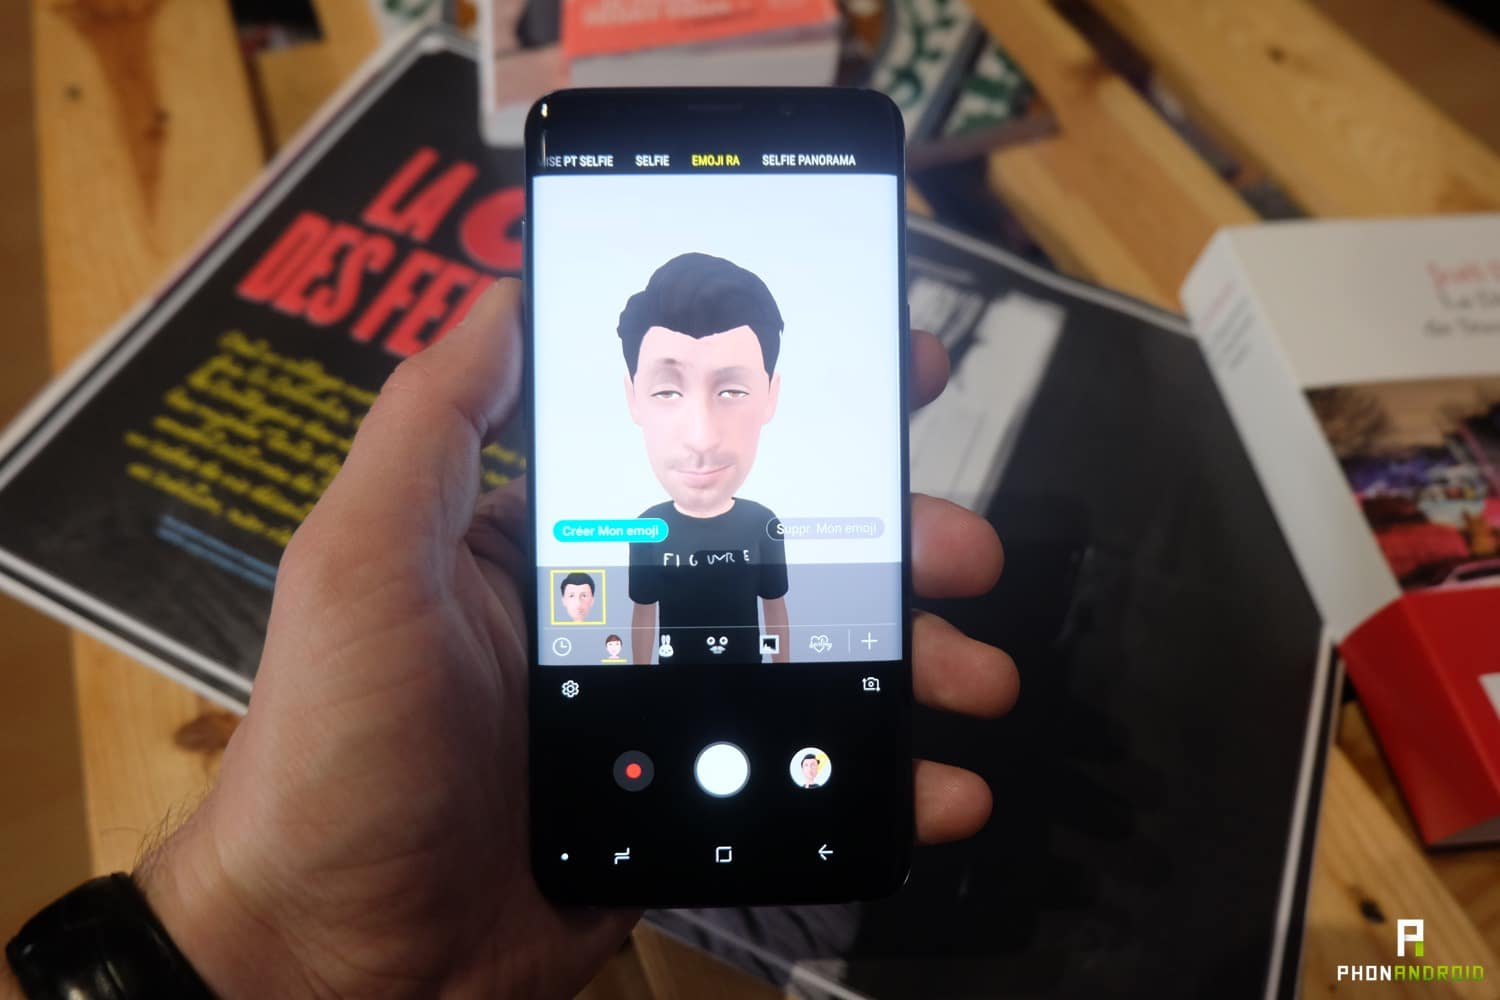 test samsung galaxy s9 plus emojis ar